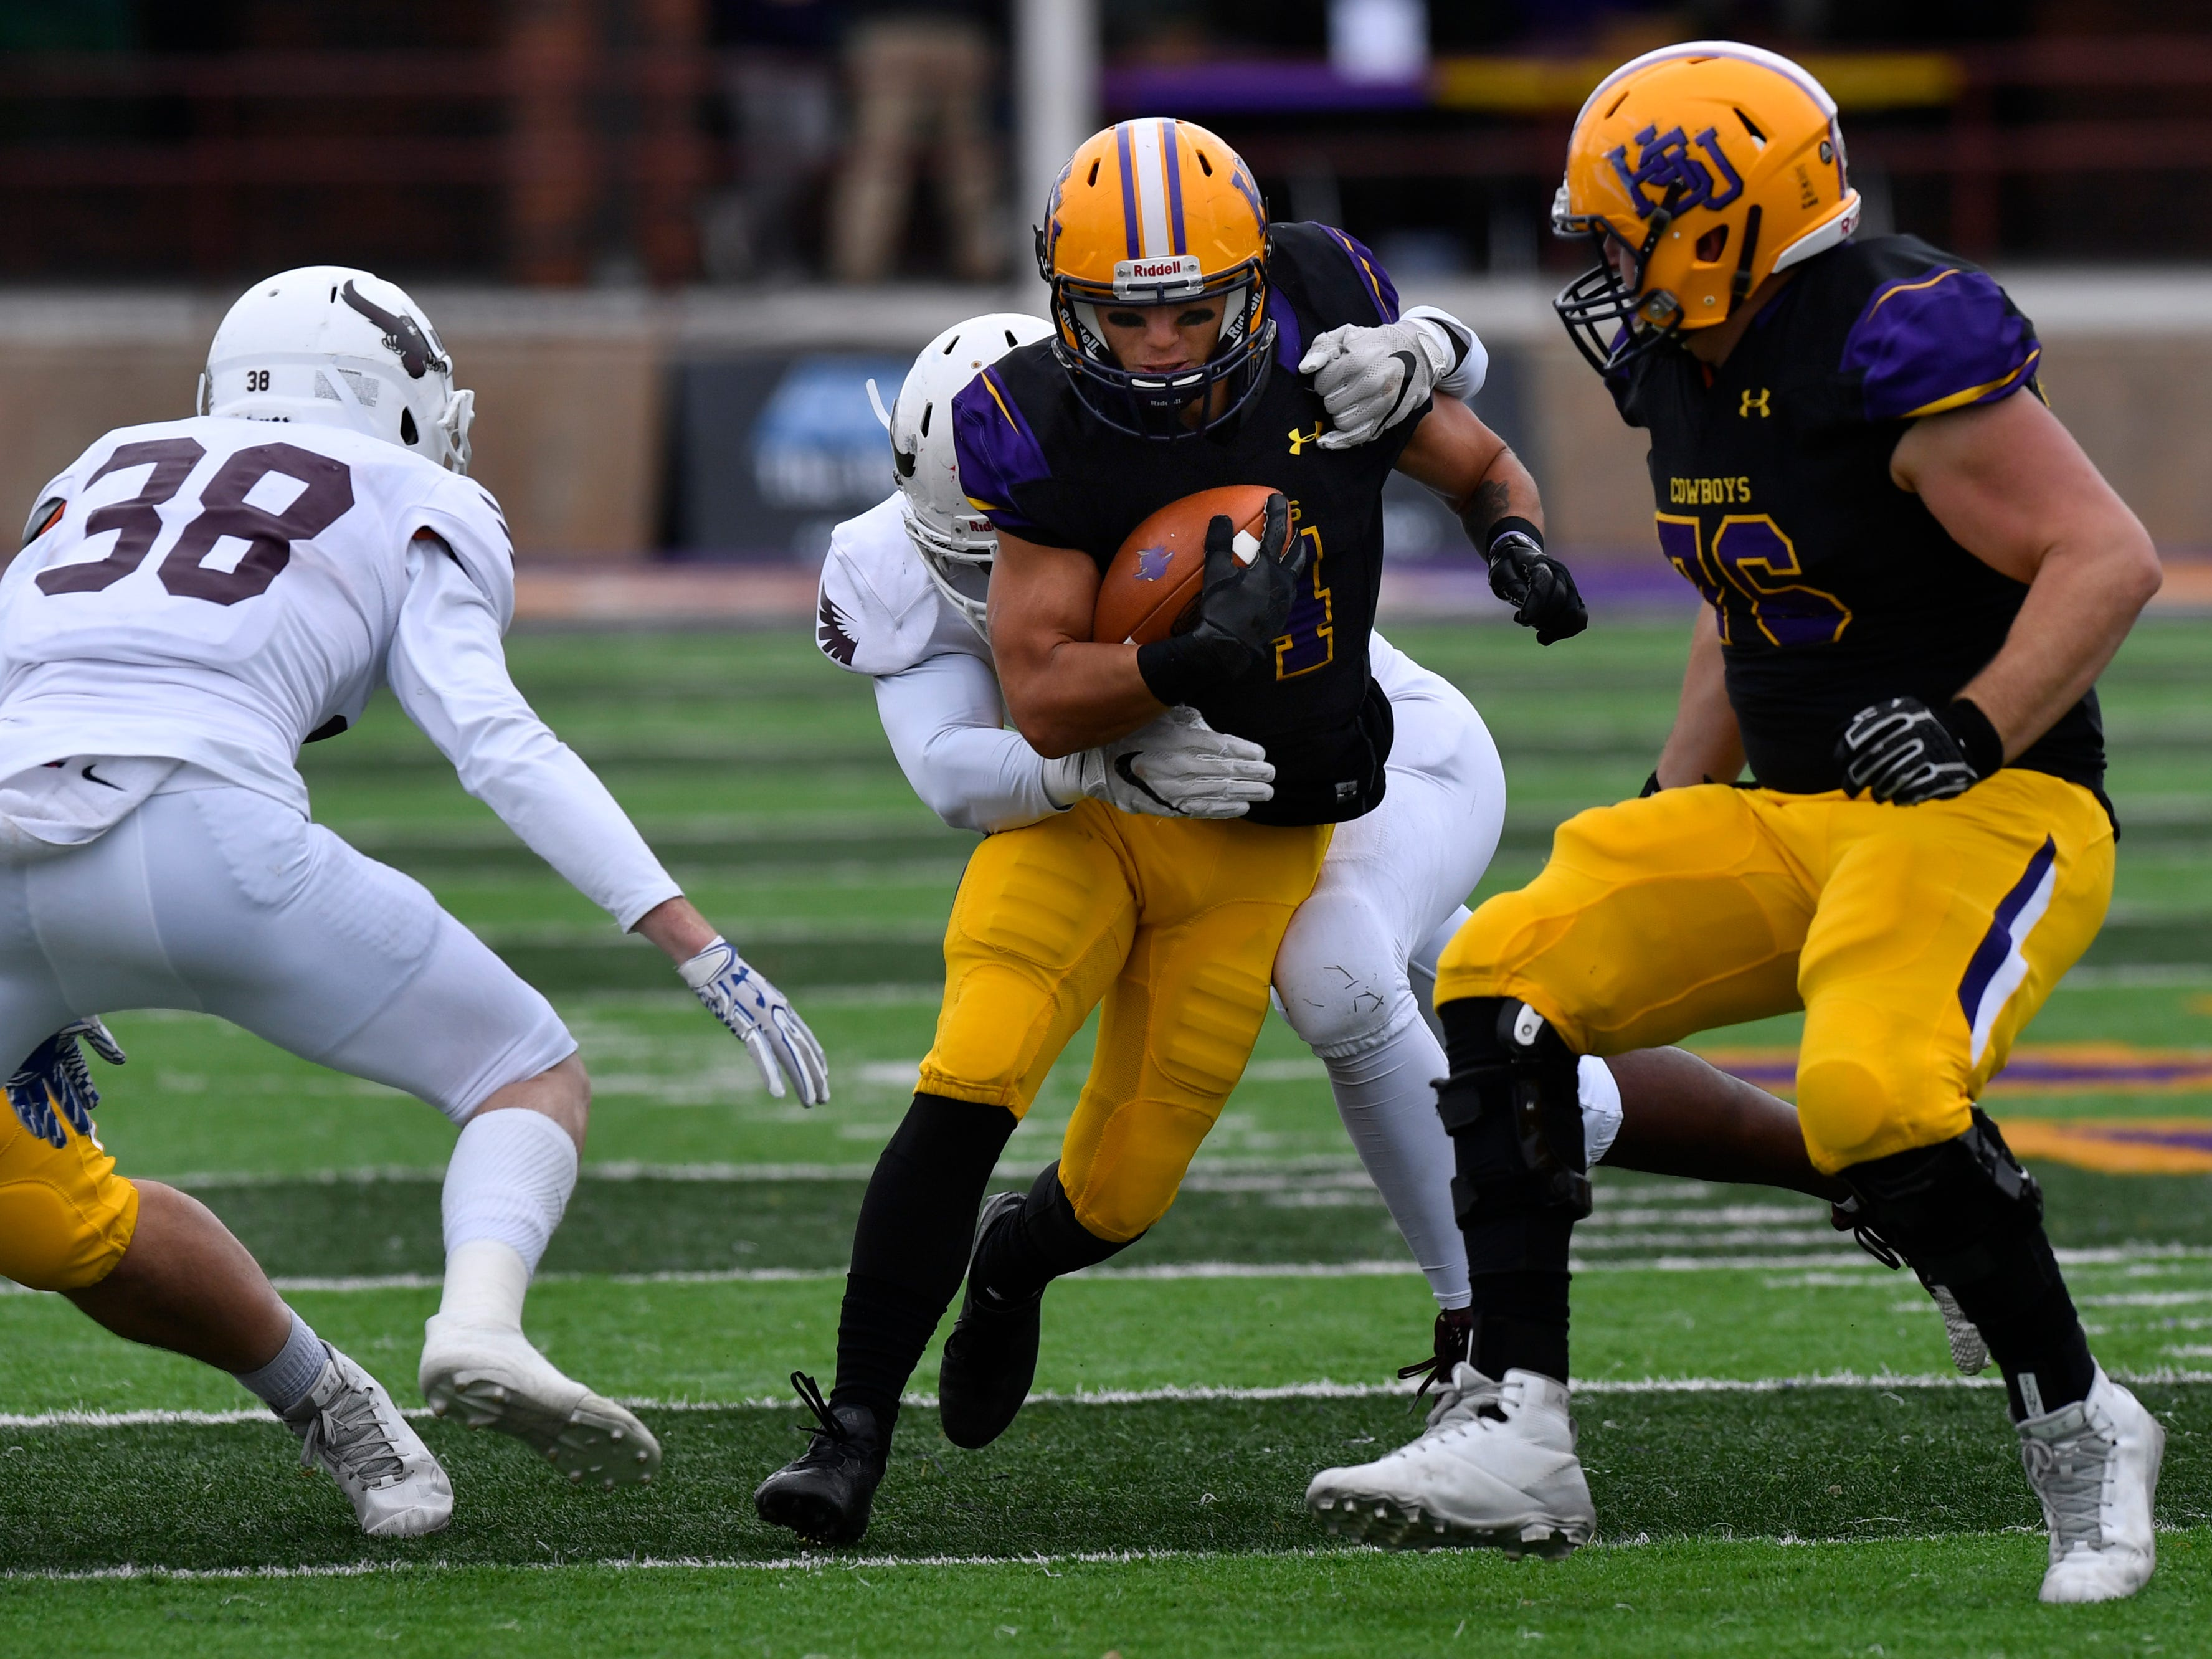 Cowboys running back Bryson Hammonds is tackled while carrying the ball downfield during Saturday's game against McMurry University at HSU Nov. 10, 2018. Final score was 83-6, Hardin-Simmons University.